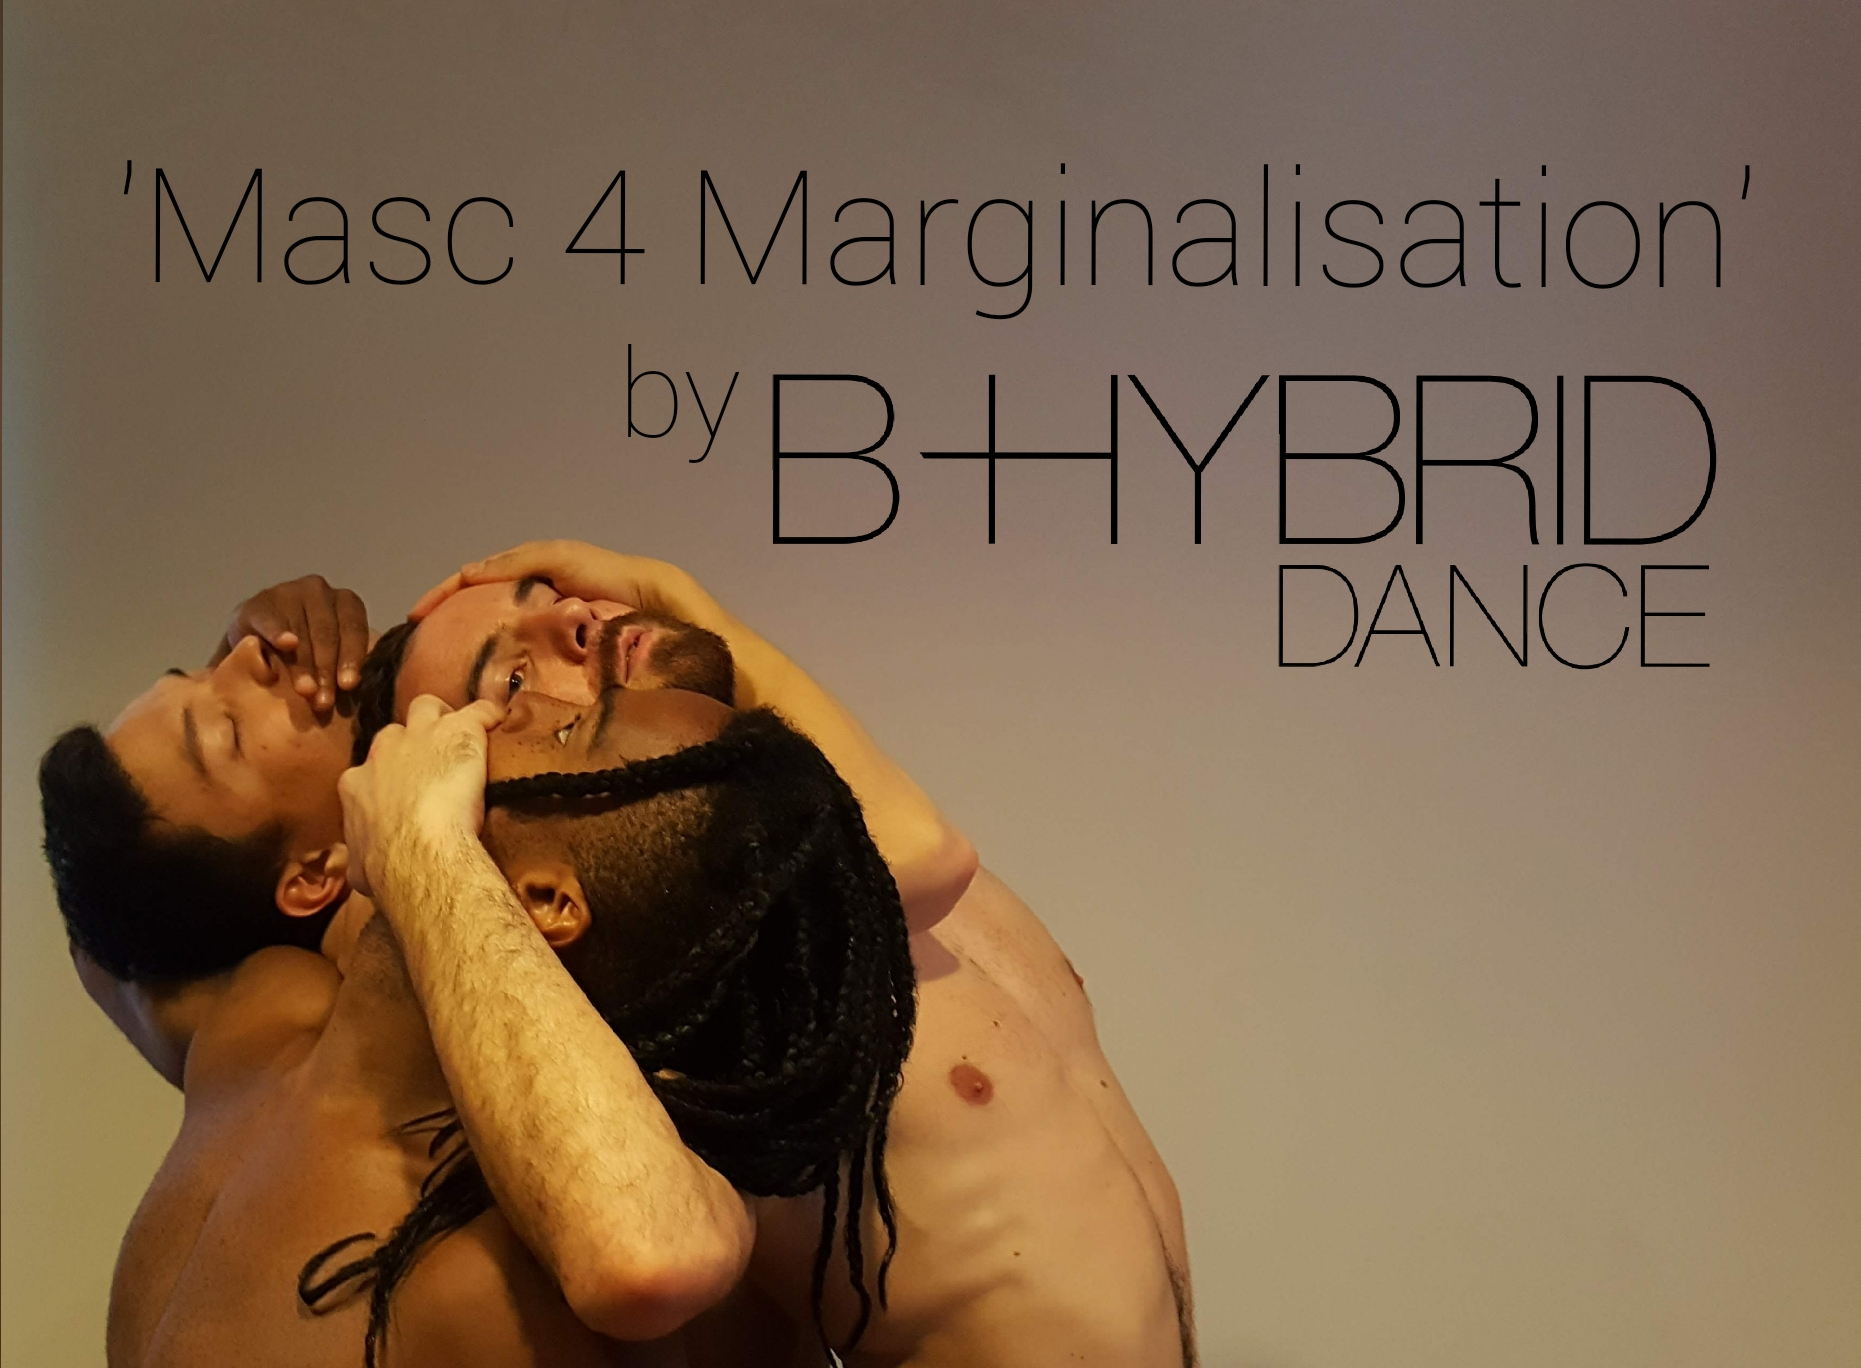 Masc 4 Marginalisation (2018) - Masc 4 Marginalisation tackles prejudices and manufactured marginalisations within modern gay culture.This work is inspired by modern issues that are perhaps leading the community's ever-progressive flow to a temporary standstill. Addressing masculinity, femininity, and fluidity, we explore current categories set out to label and pigeonhole those within LGBTQ+ communities. We delve into what could be when social 'boxes' are deconstructed, boundaries are blurred, and the space between individuals are rid of prejudice or preference.Choreography - Brian GillespieAssisted by - Sophie OwenPerformers - Dakarayi Mashava, Sydney Robertson, Ted RogersUnderstudy - Dan Thatcher